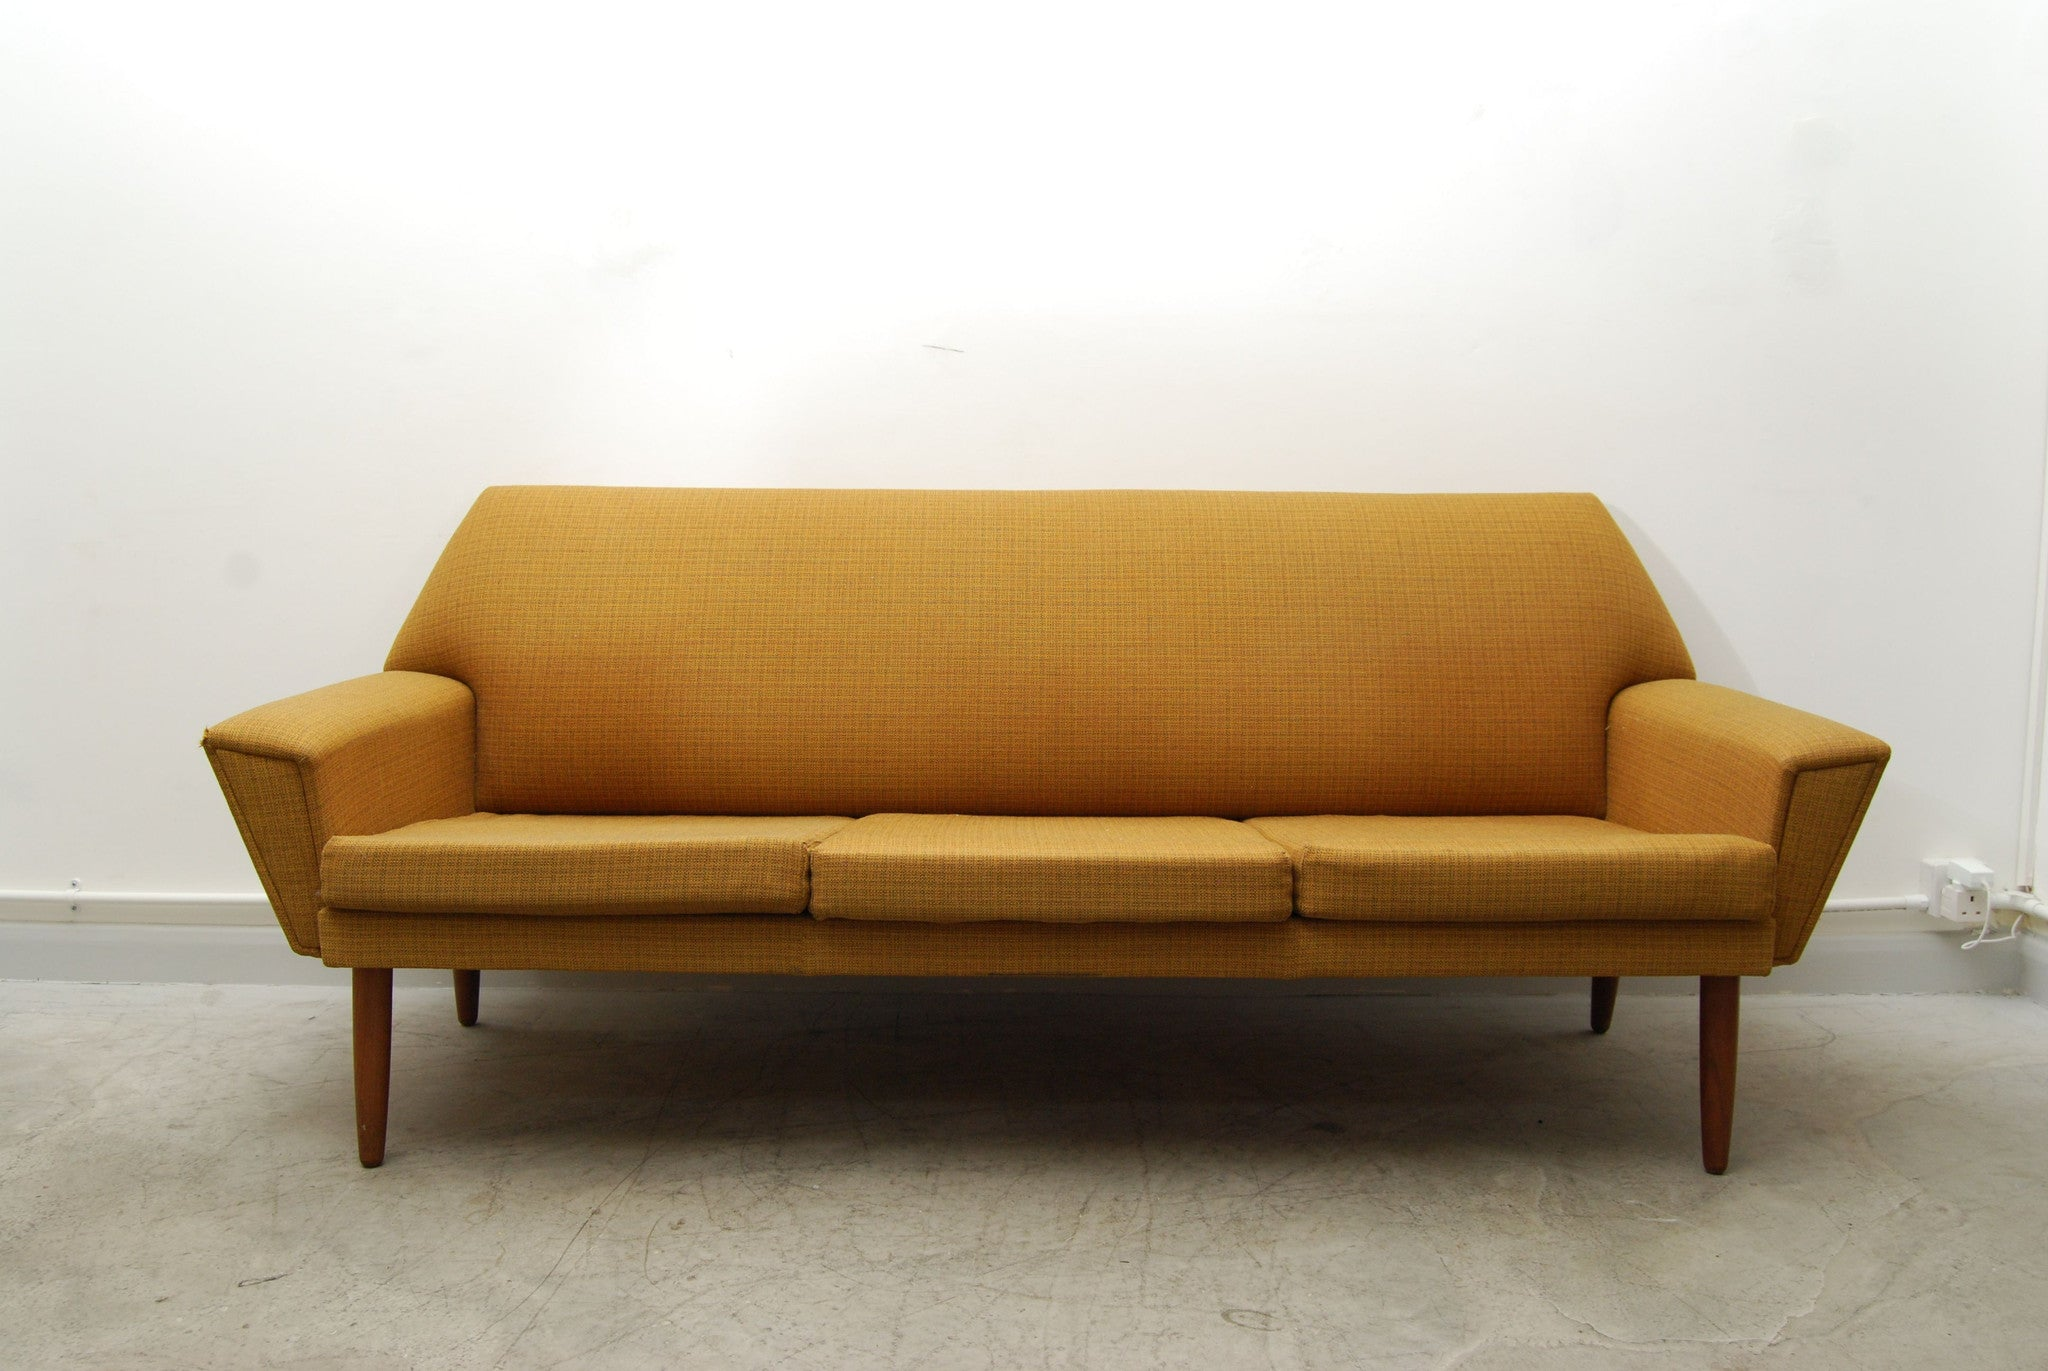 Three seat sofa in mustard yellow